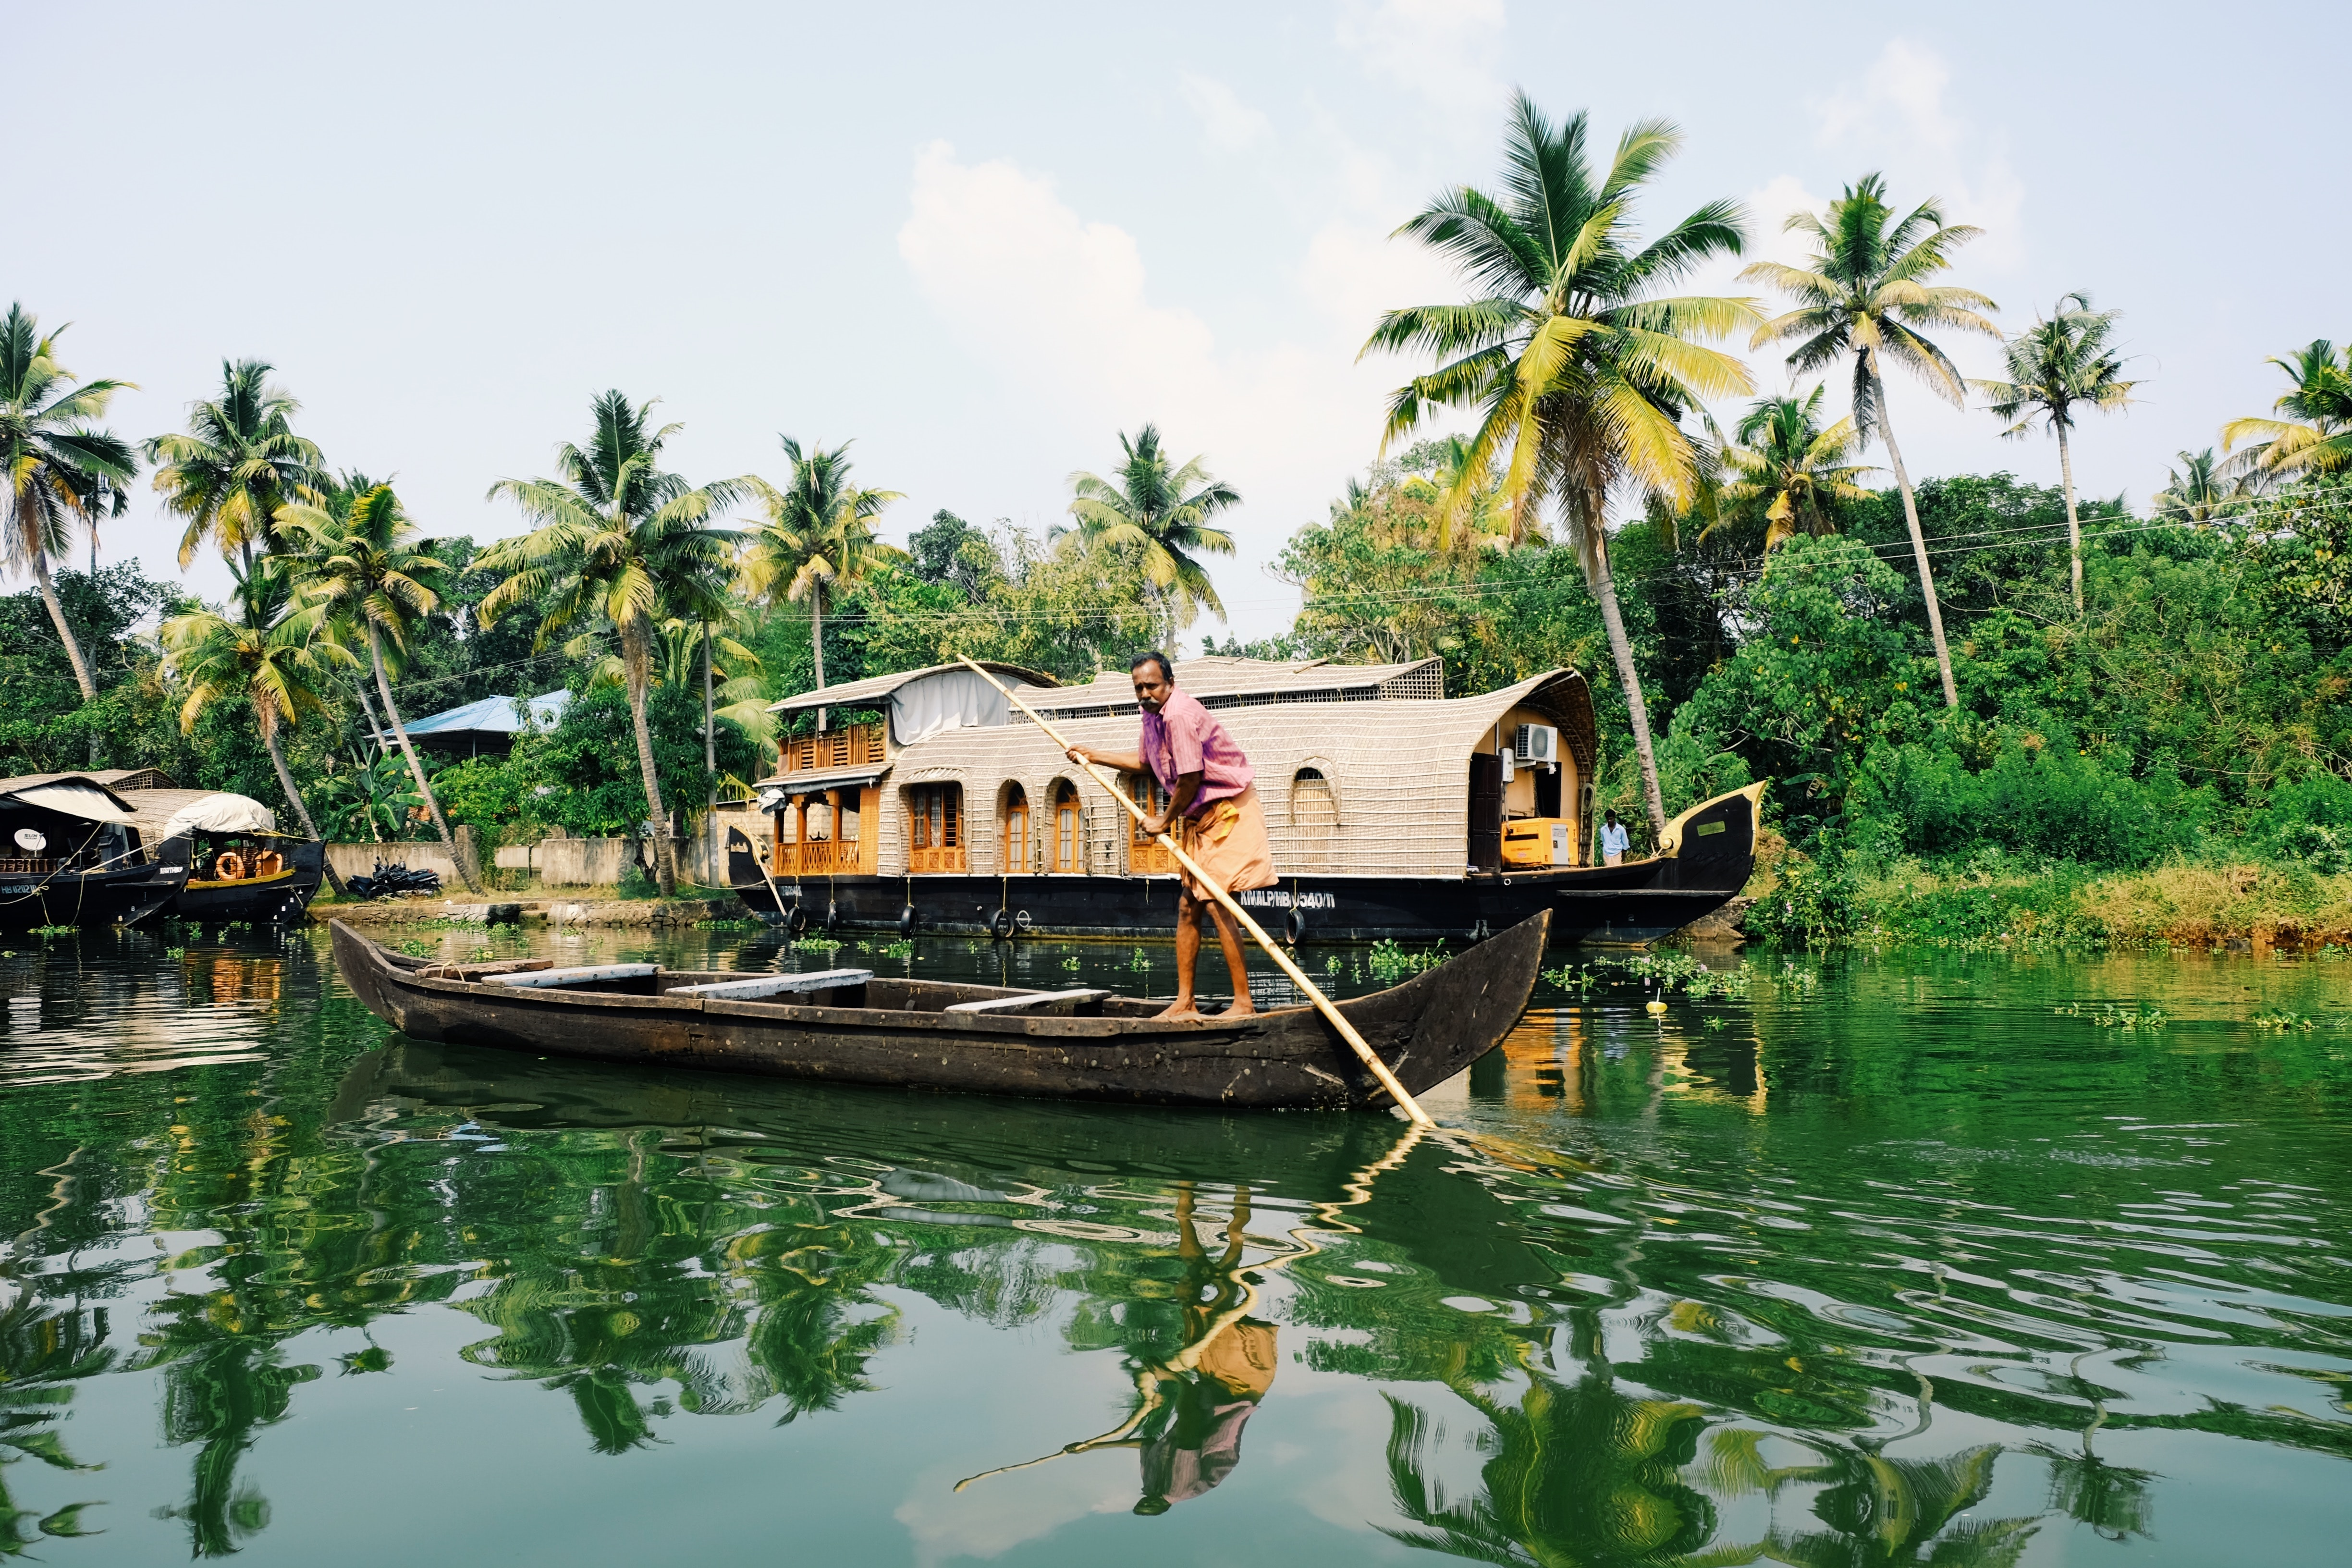 FROM ALLEPPEY TO ALAPPUZHA - THE HOUSEBOATS OF KERALA